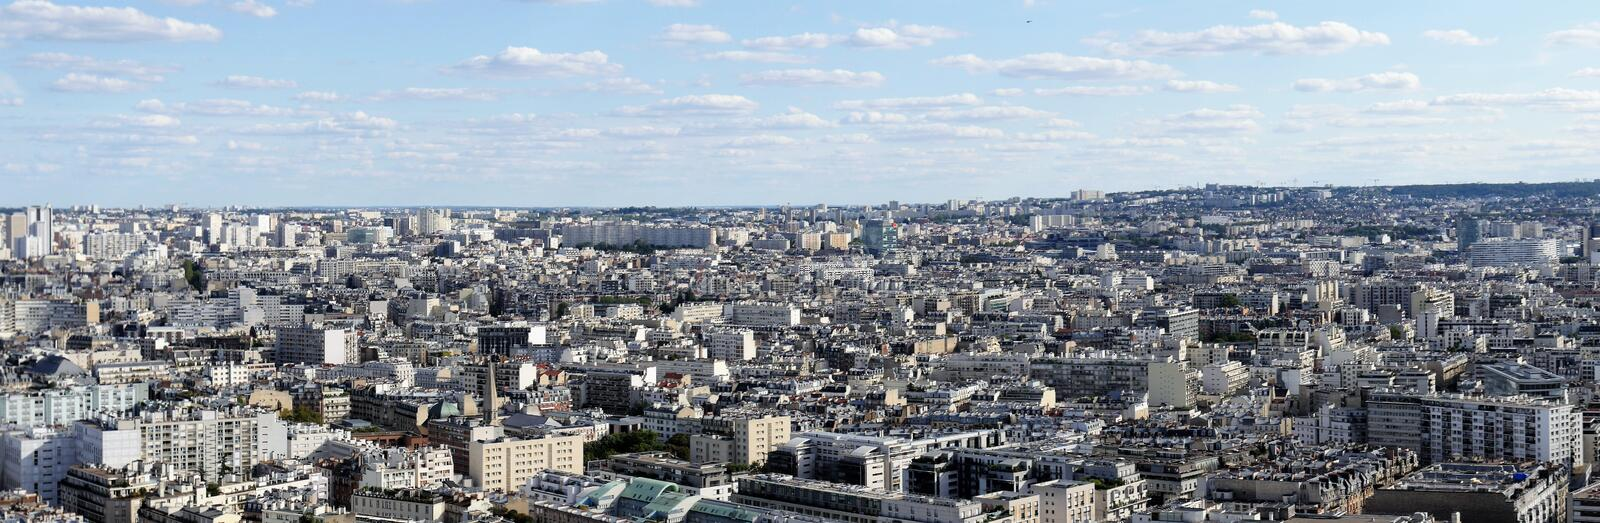 Panorama picture overview of the sea of ​​houses of Paris, urban life in a narrow space, view to the east royalty free stock images